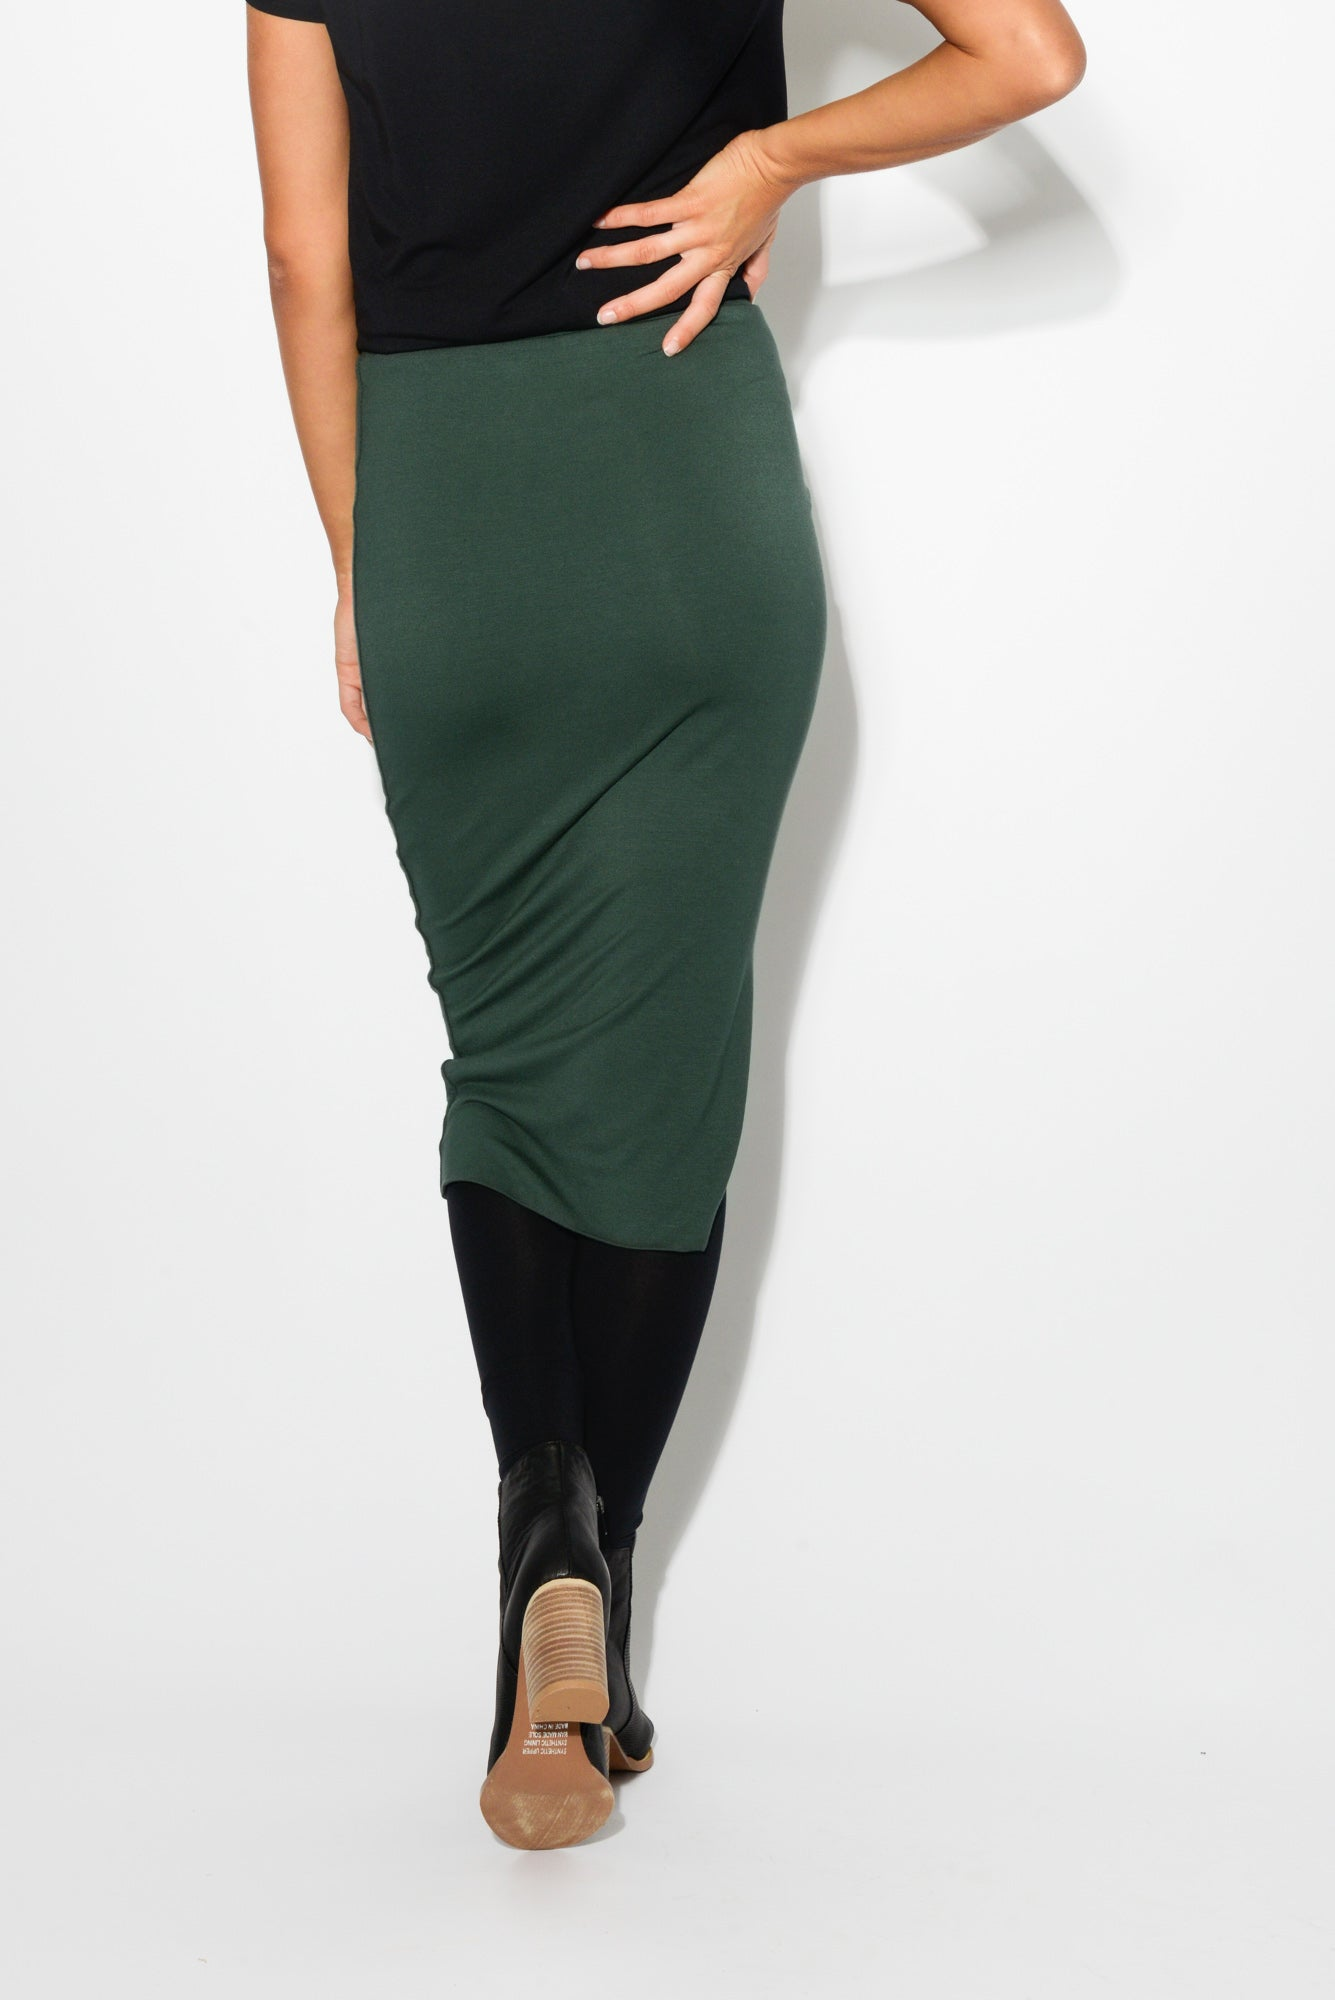 Nina Green Midi Bamboo Skirt - Bamboo Body - Blue Bungalow Online